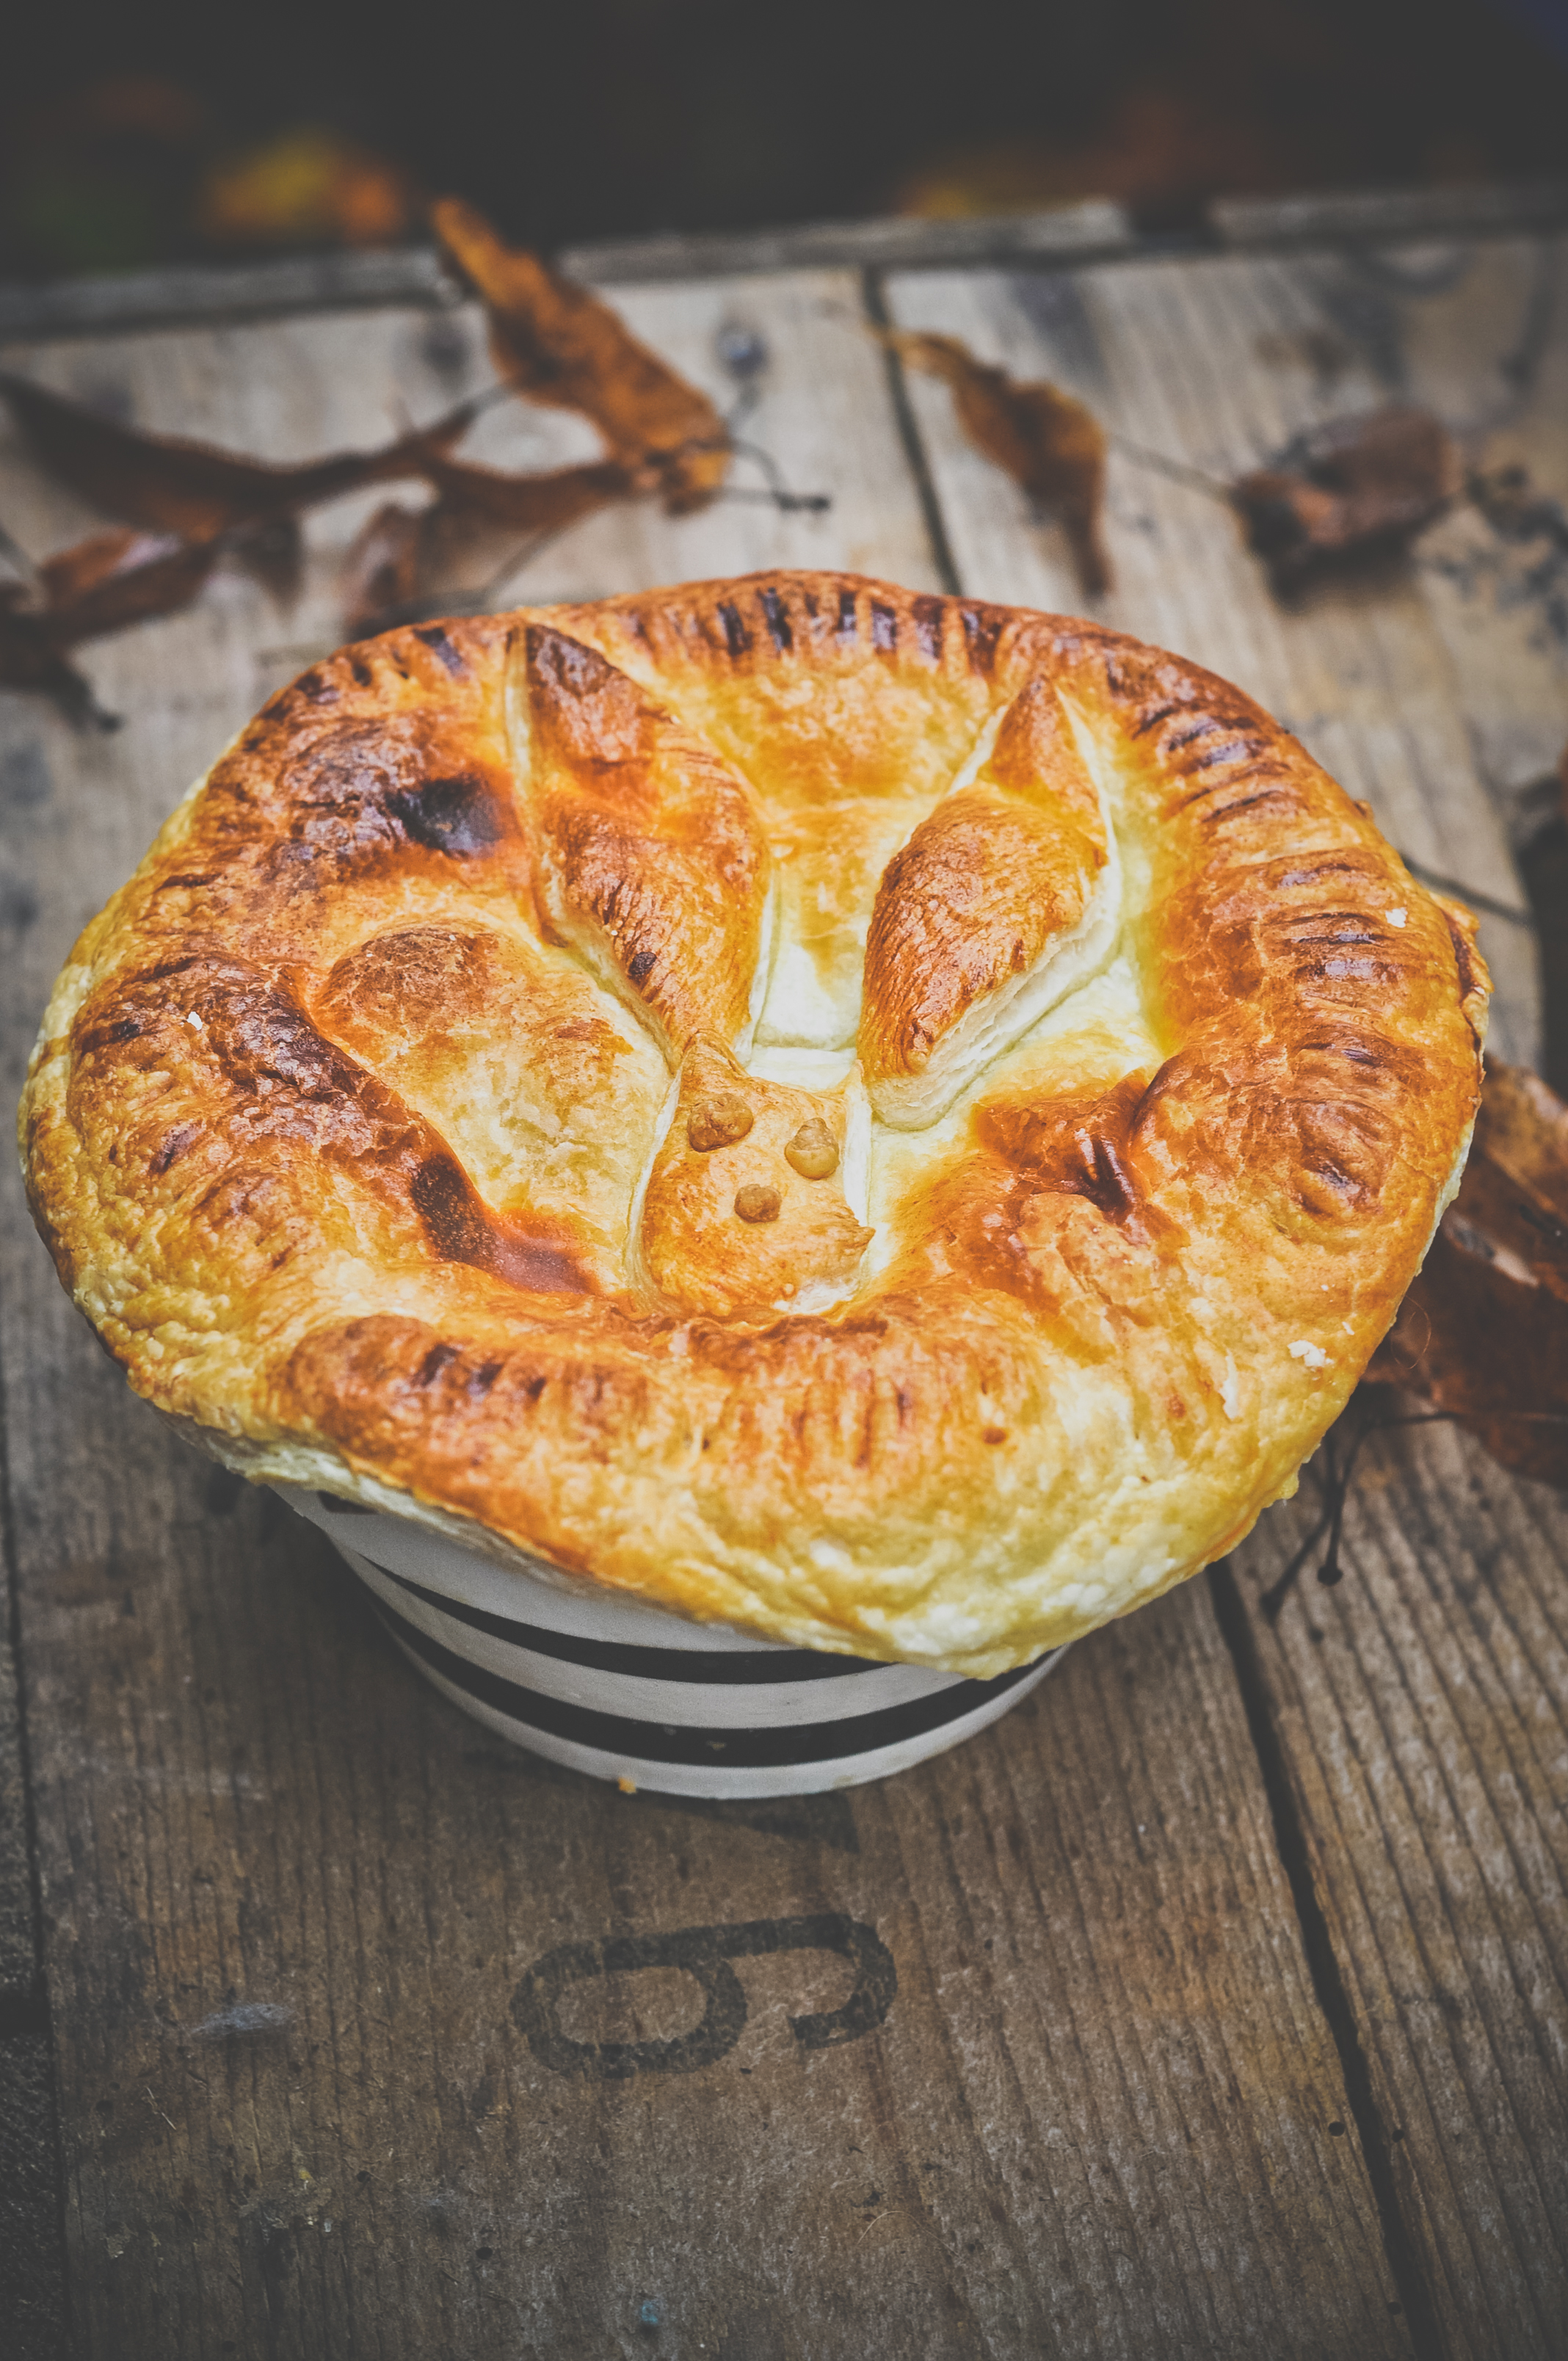 Recipe: How to make game pie